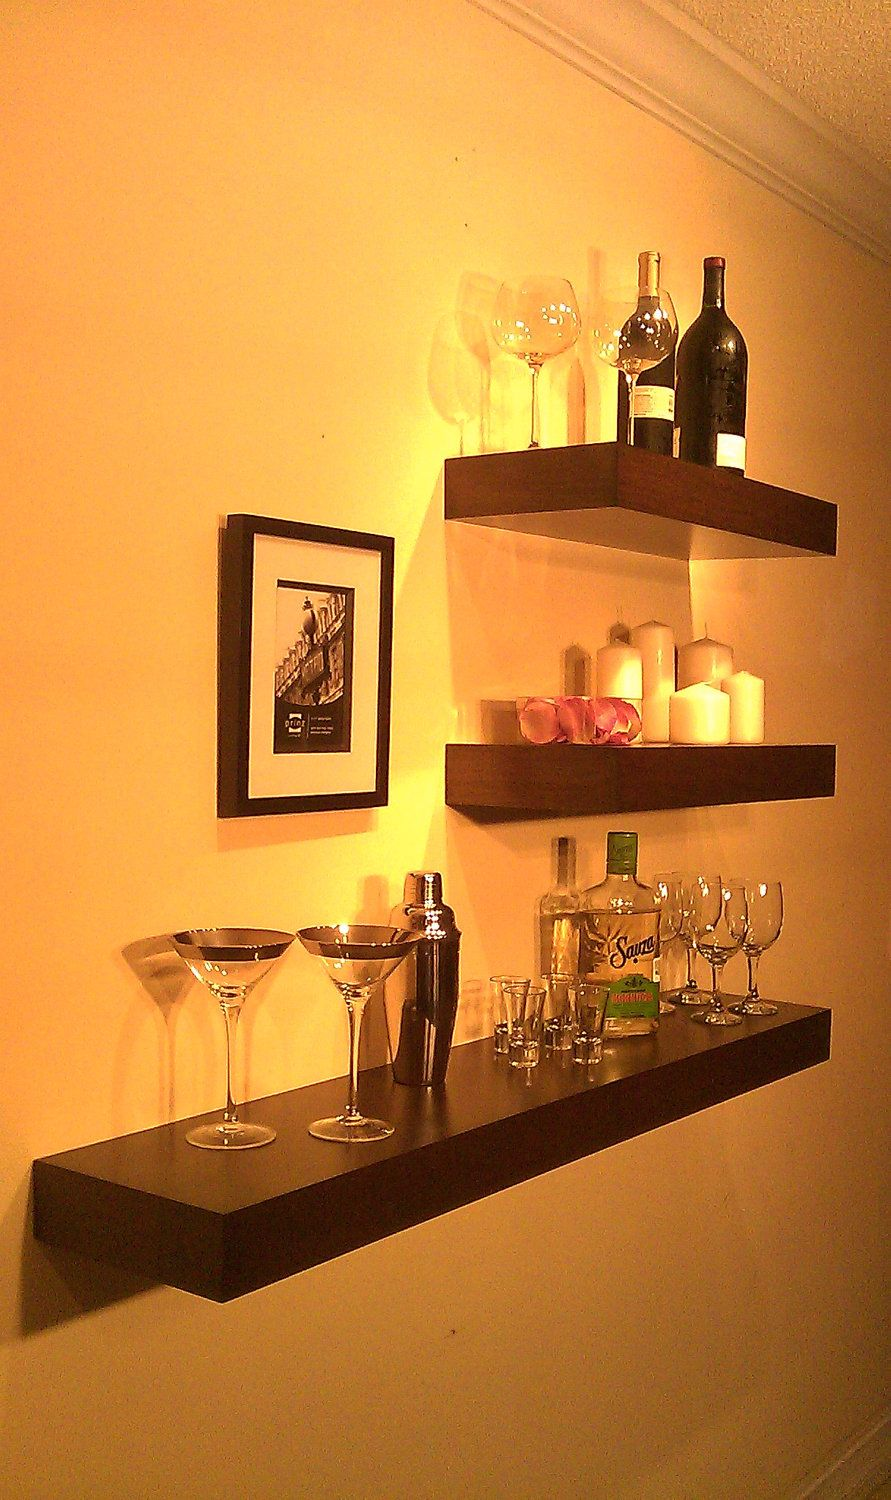 floating wood shelves behind bar for neat out the way storage above shelf mount shelving dishes simple wooden supports adhesive curtain rod hooks stand alone black gloss drawer